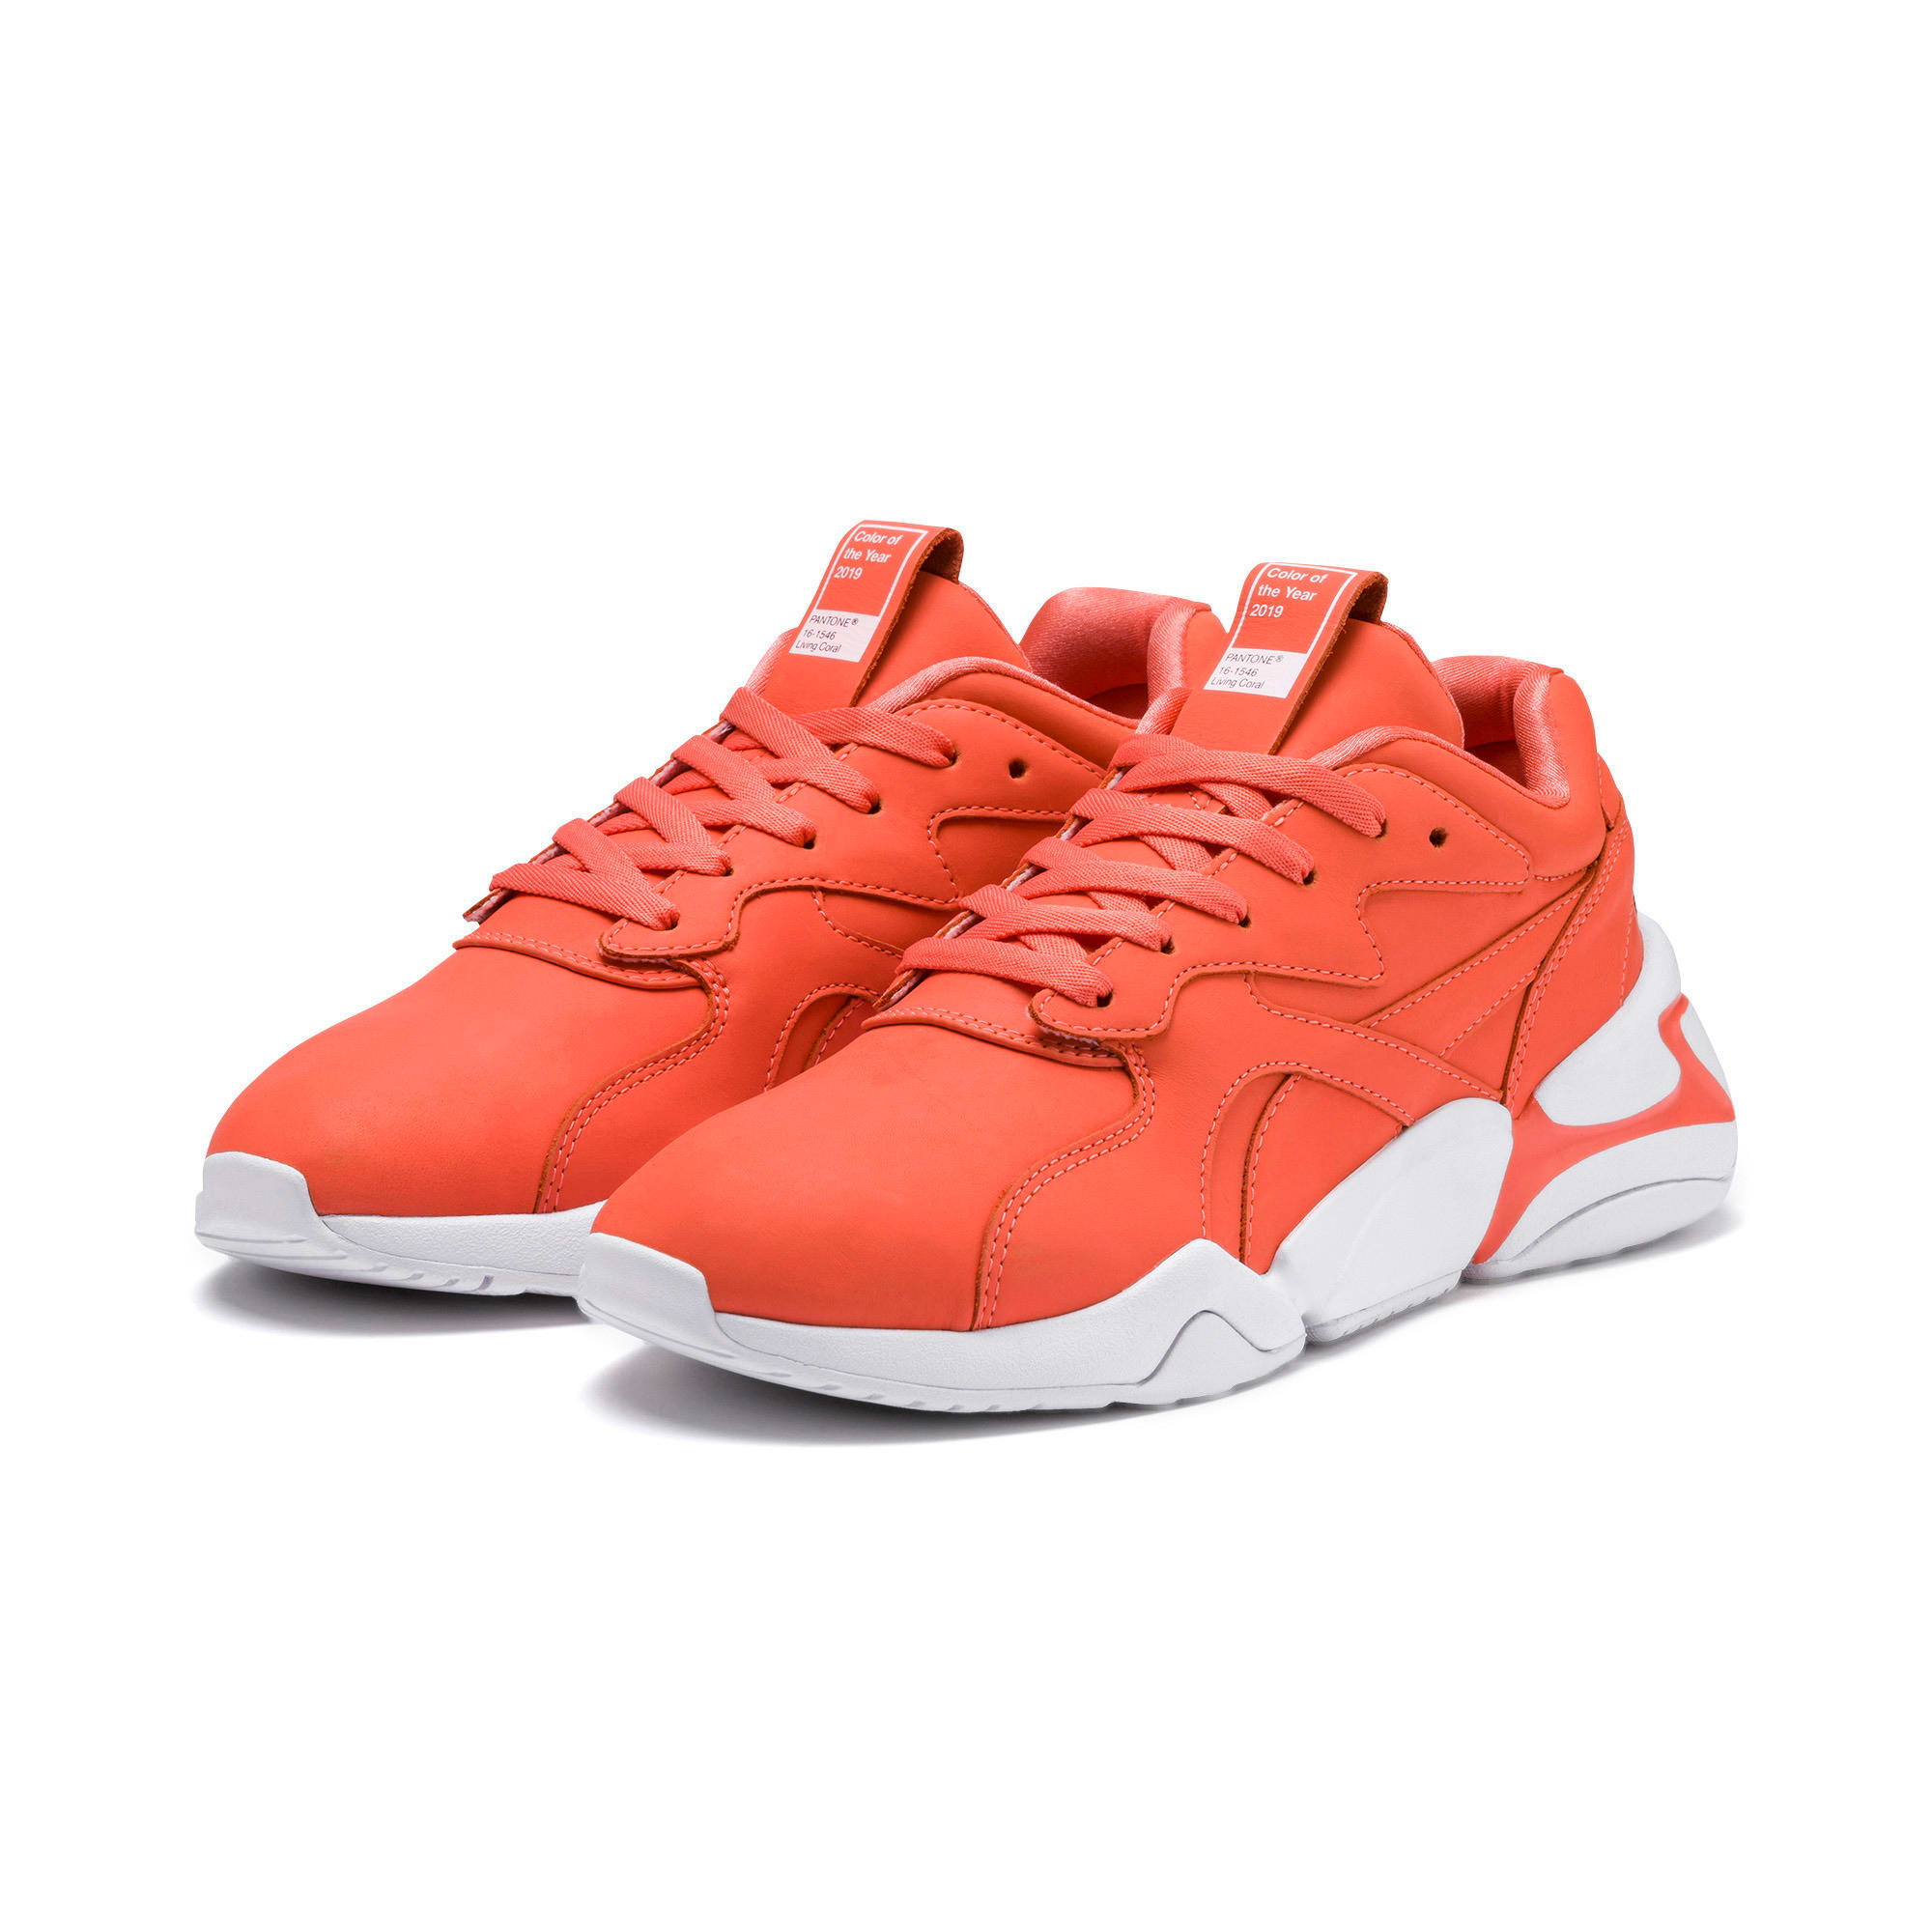 Thumbnail 2 of PUMA x PANTONE Nova Women's Trainers, Living Coral-Puma White, medium